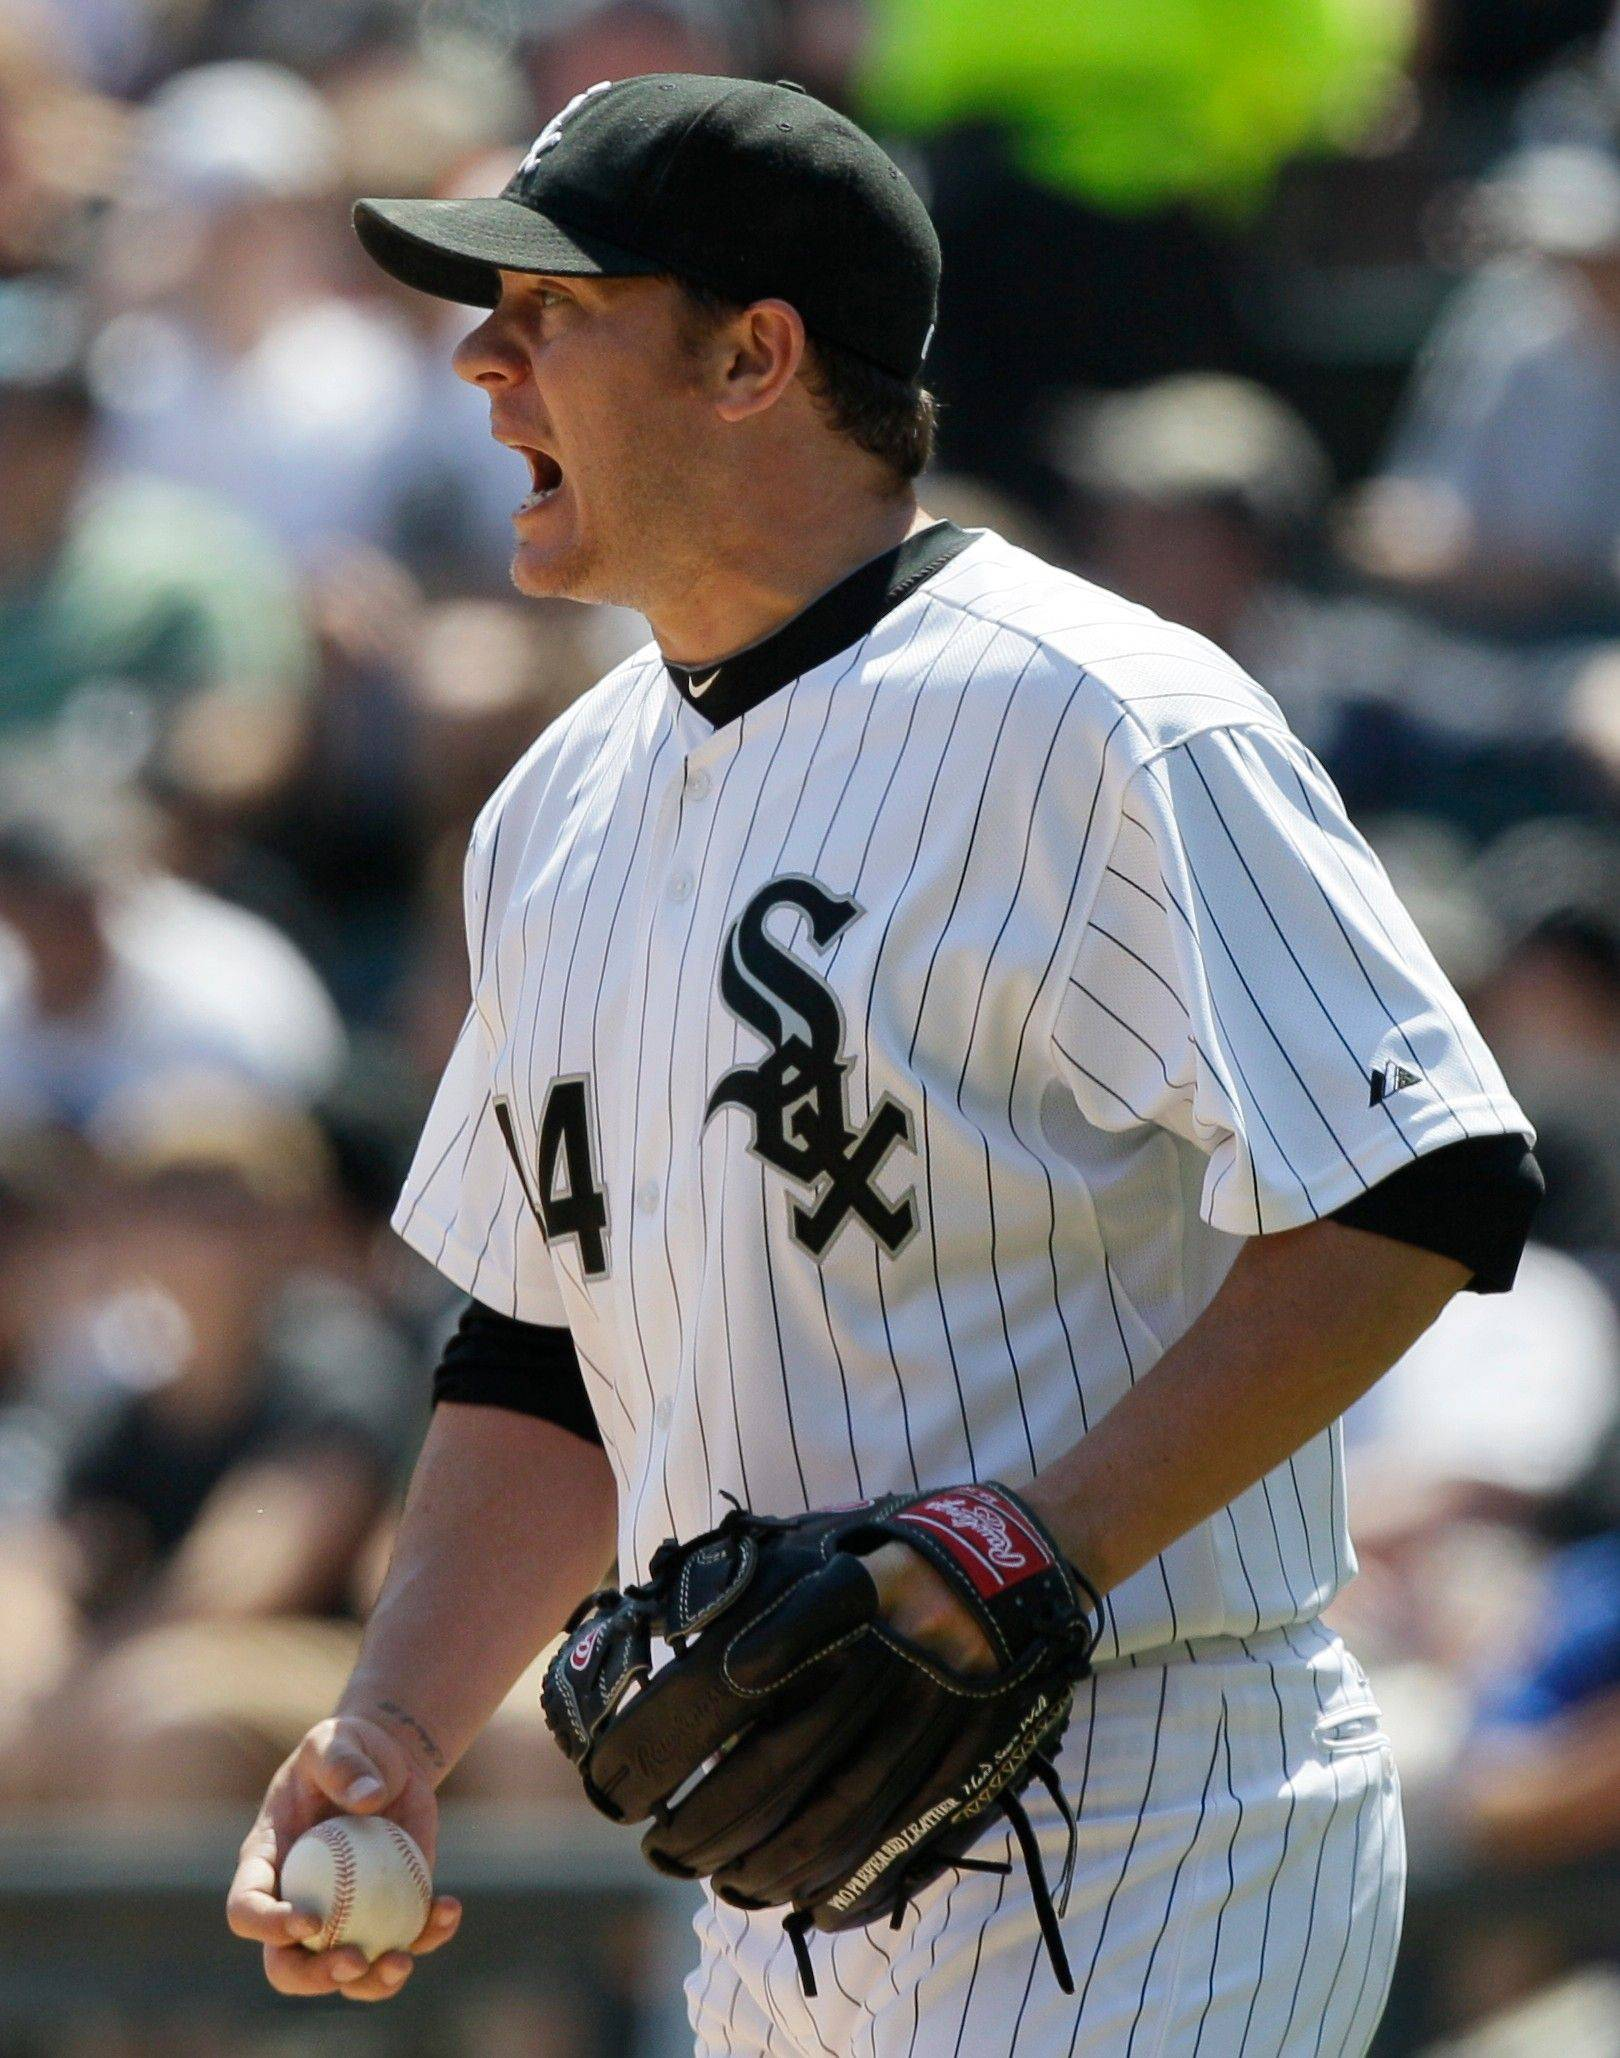 White Sox starter Jake Peavy reacts during the Tigers' 6-run fourth inning Sunday at U.S. Cellular Field.